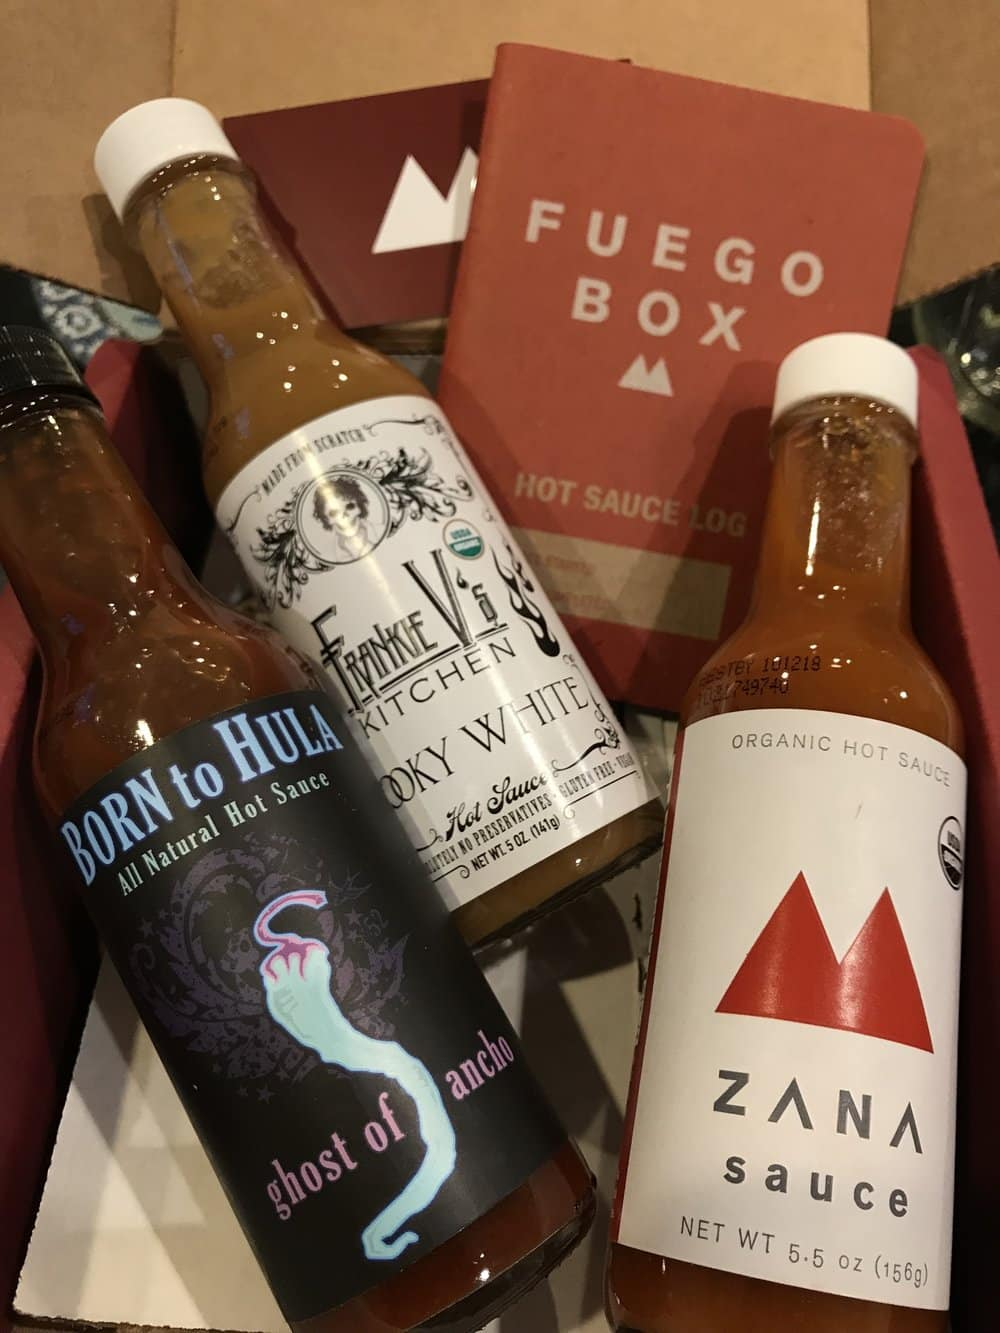 An assortment of bottles of hot sauces by Fuego Box